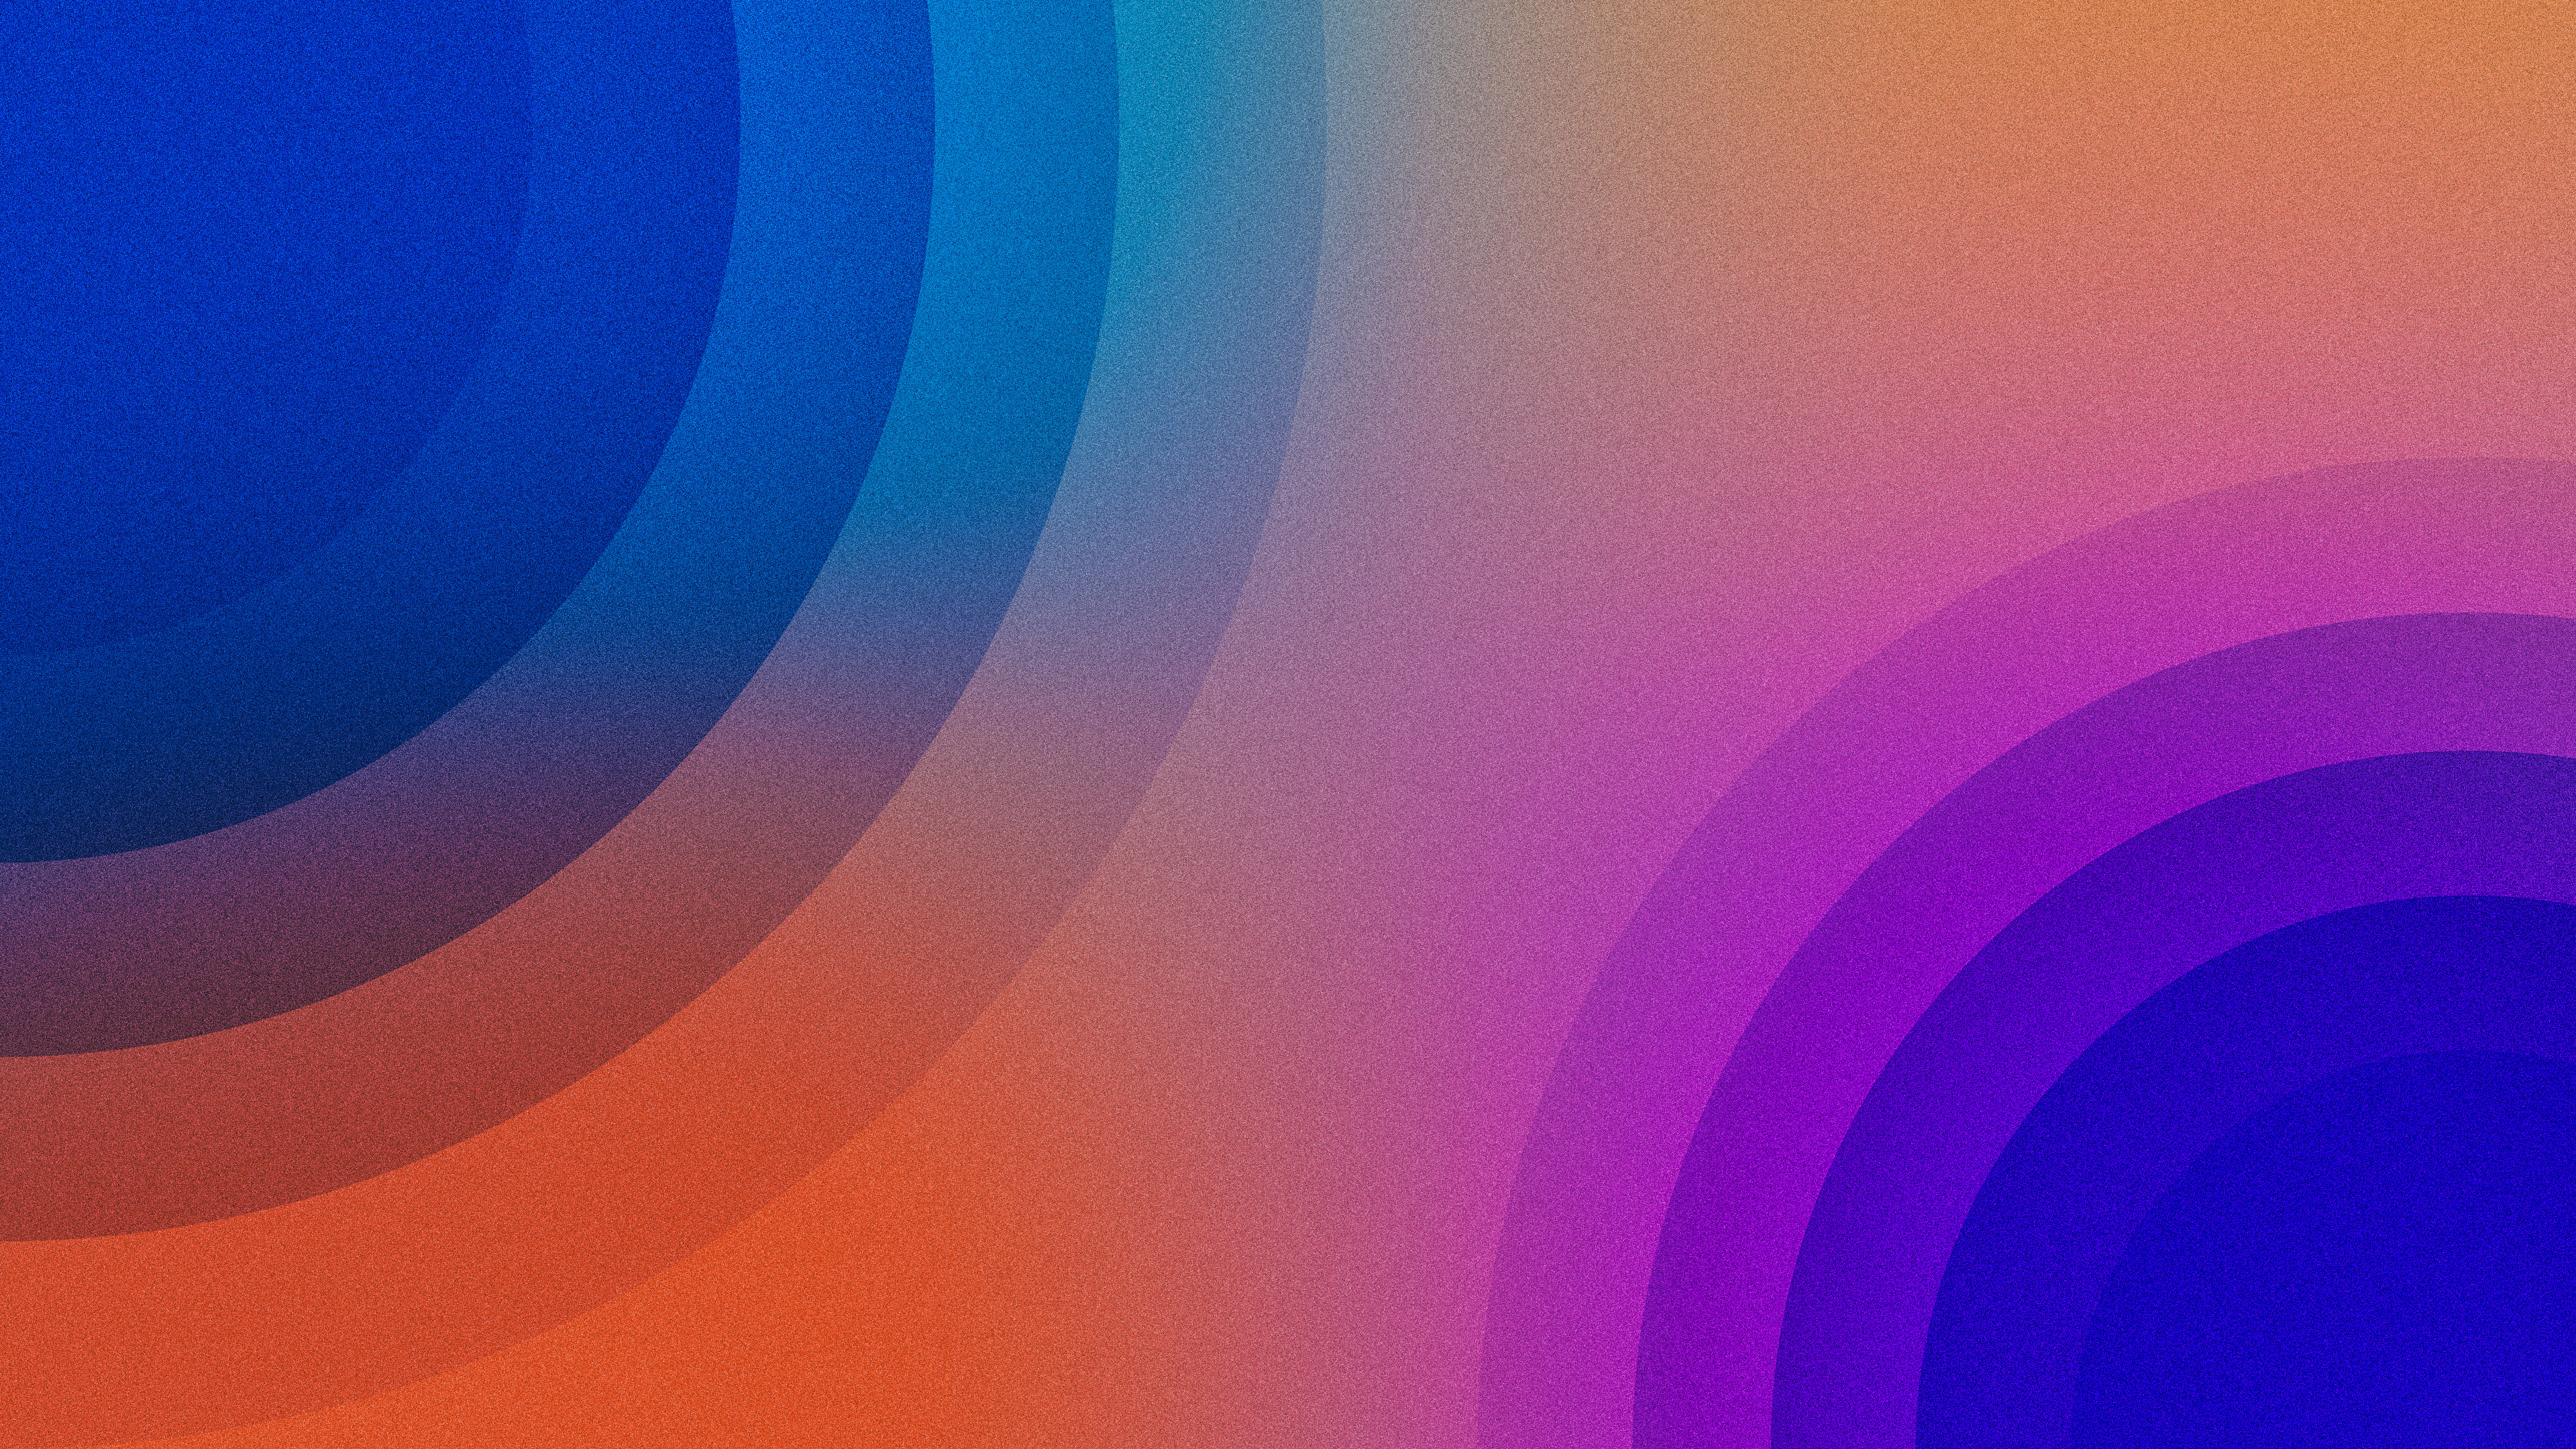 sound waves abstract 4k so 3840x2160 1 - Sound Waves Abstract -